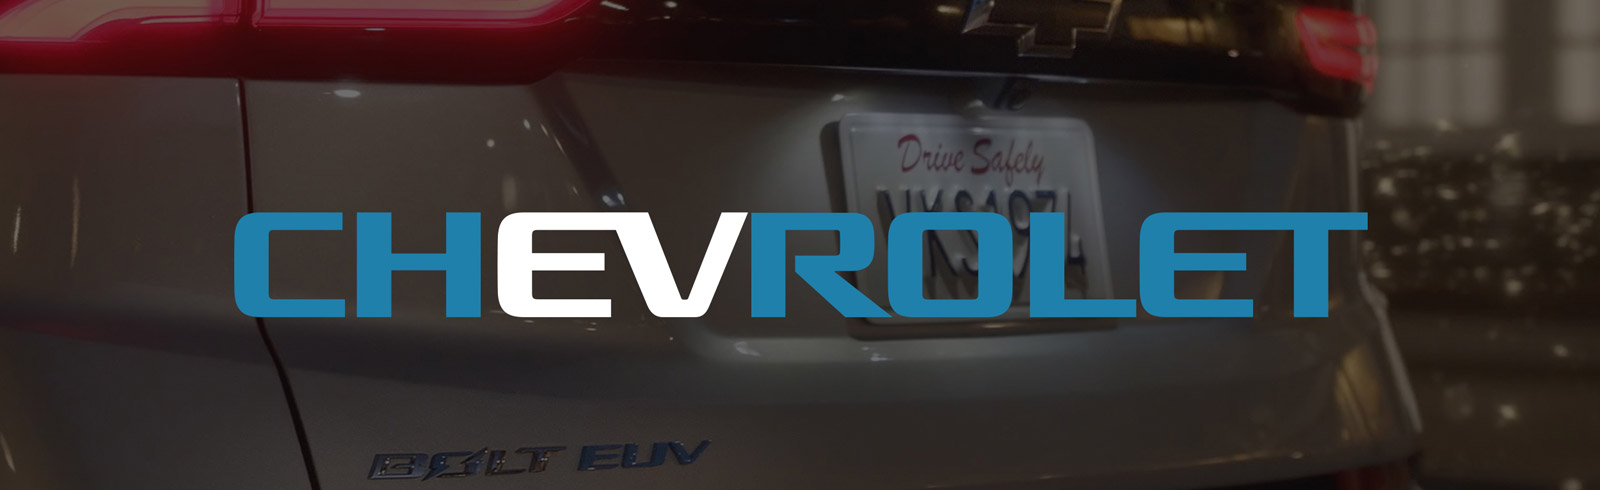 The 2022 Chevrolet Bolt EUV and Bolt EV will be unveiled on February 14